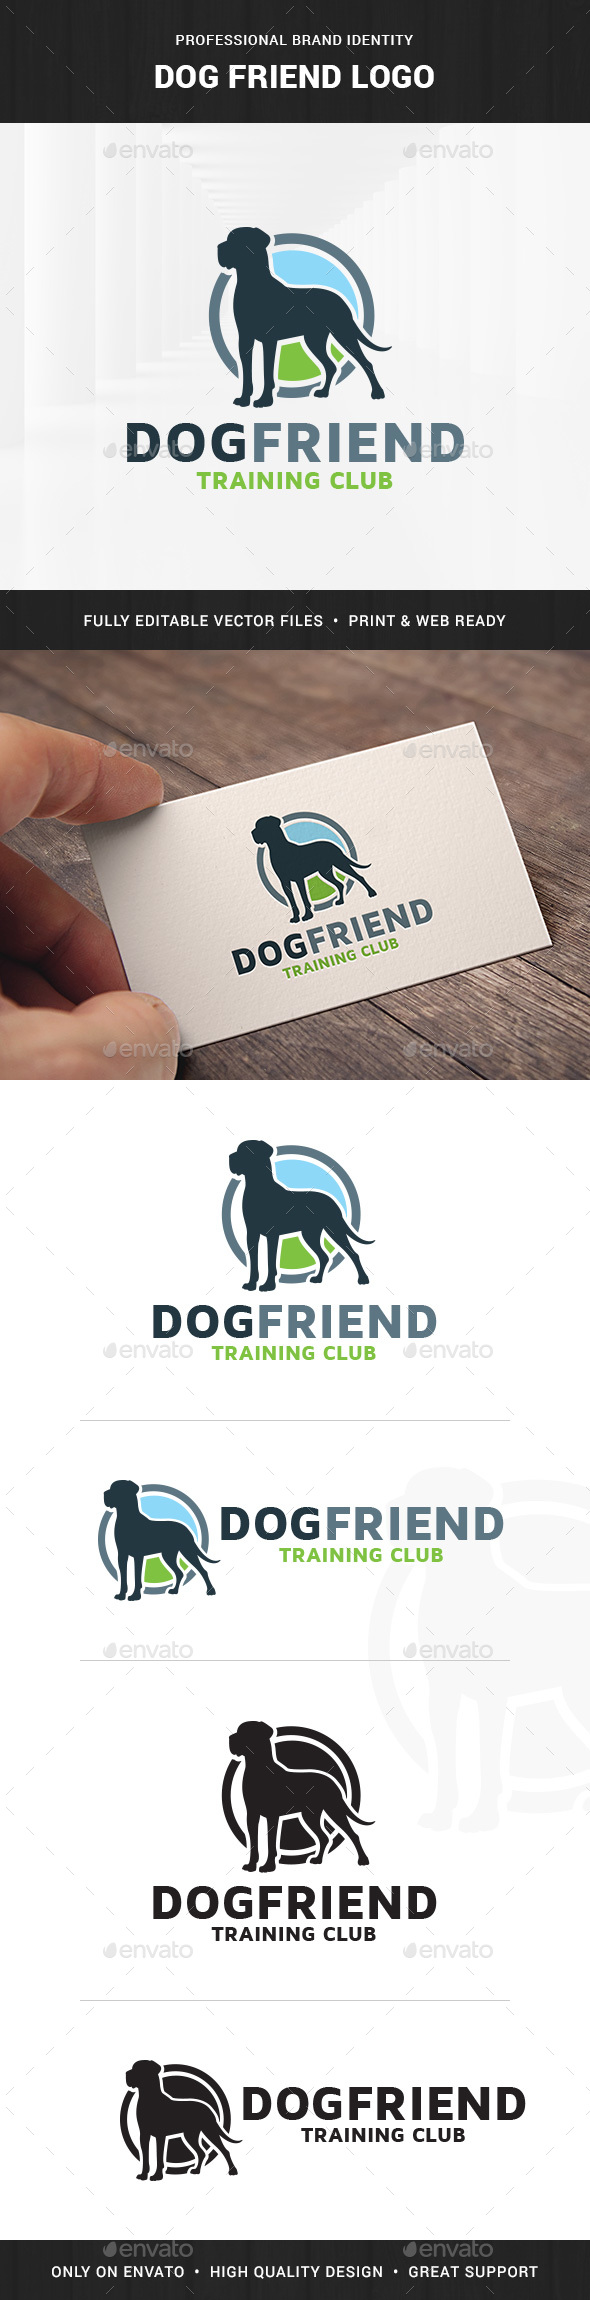 Dog Friend Logo Template